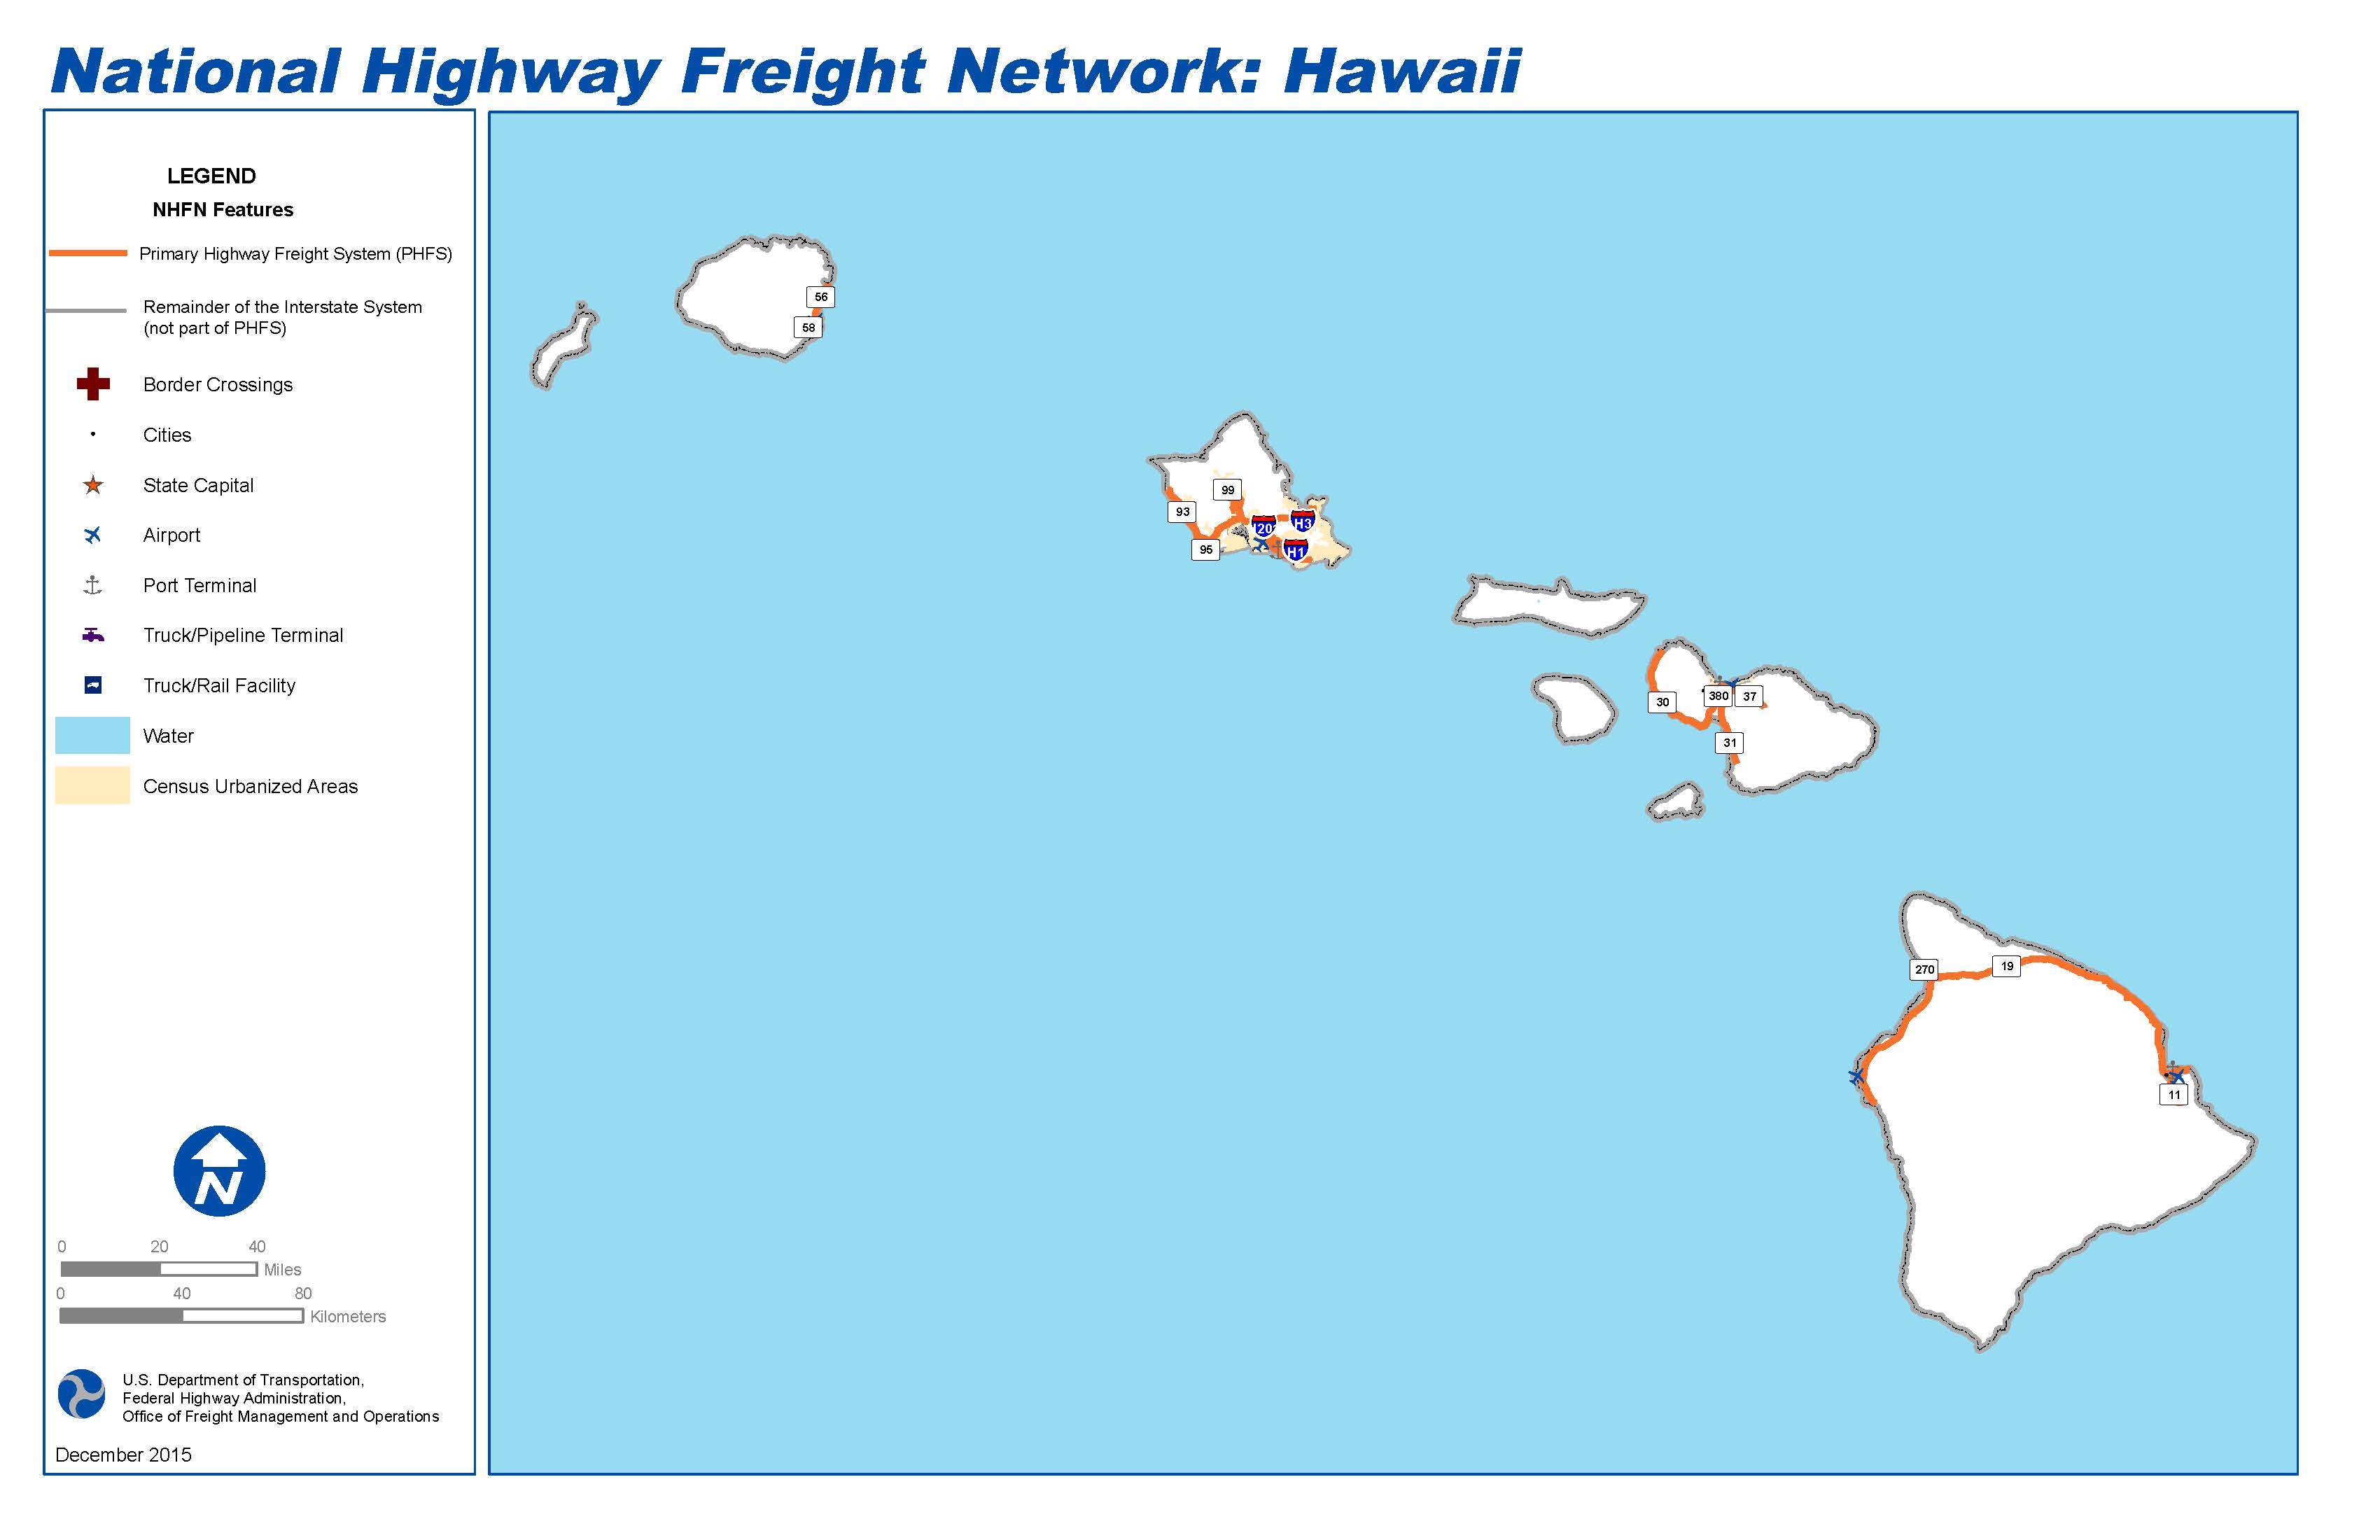 National Highway Freight Network Map and Tables for Hawaii FHWA